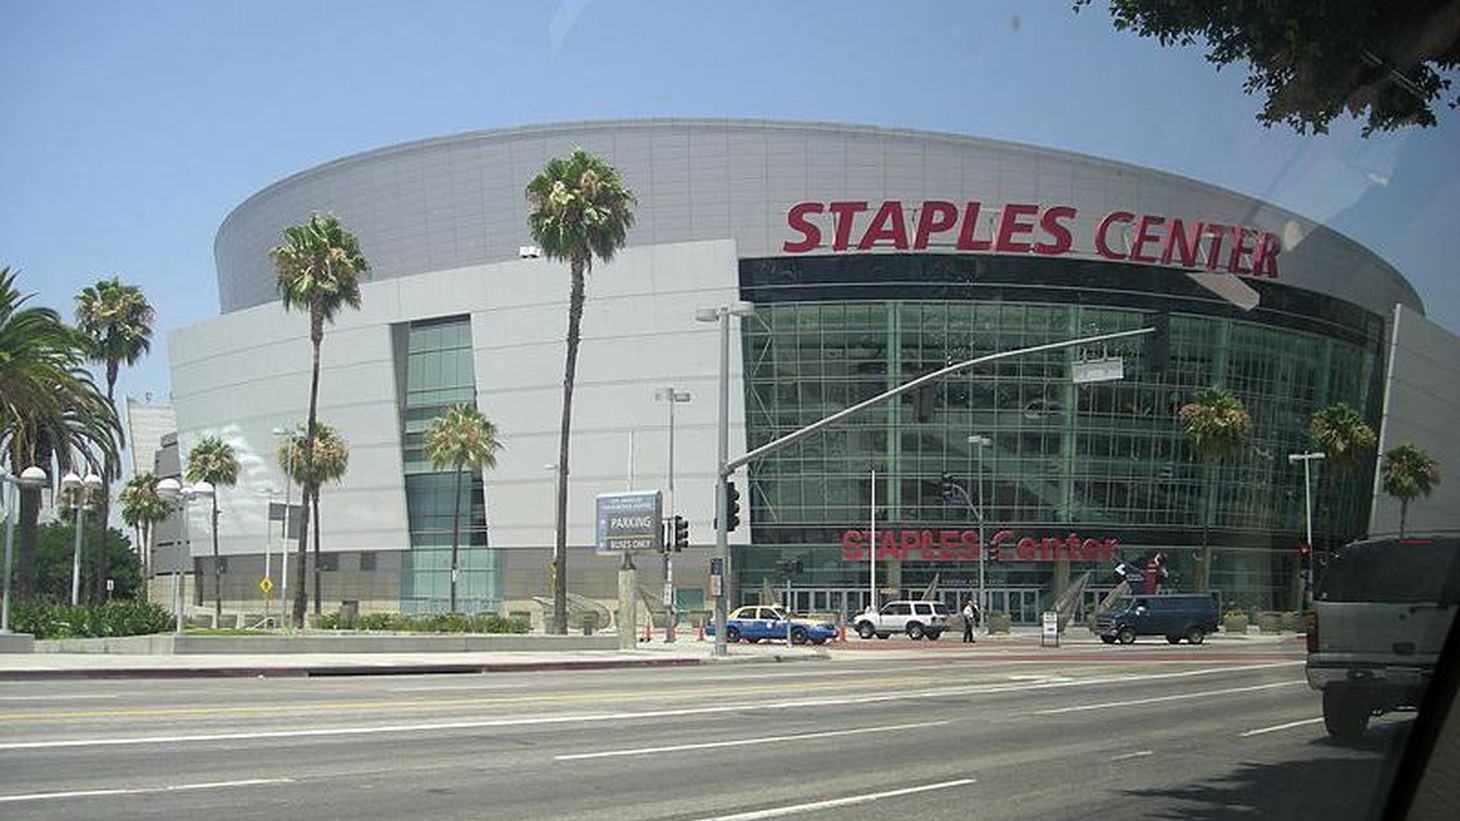 AEG, which built Staples Center and LA Live, is not for sale and CEO Tim Lieweke is leaving the company. What does it mean for plans to lure the NFL back to LA?